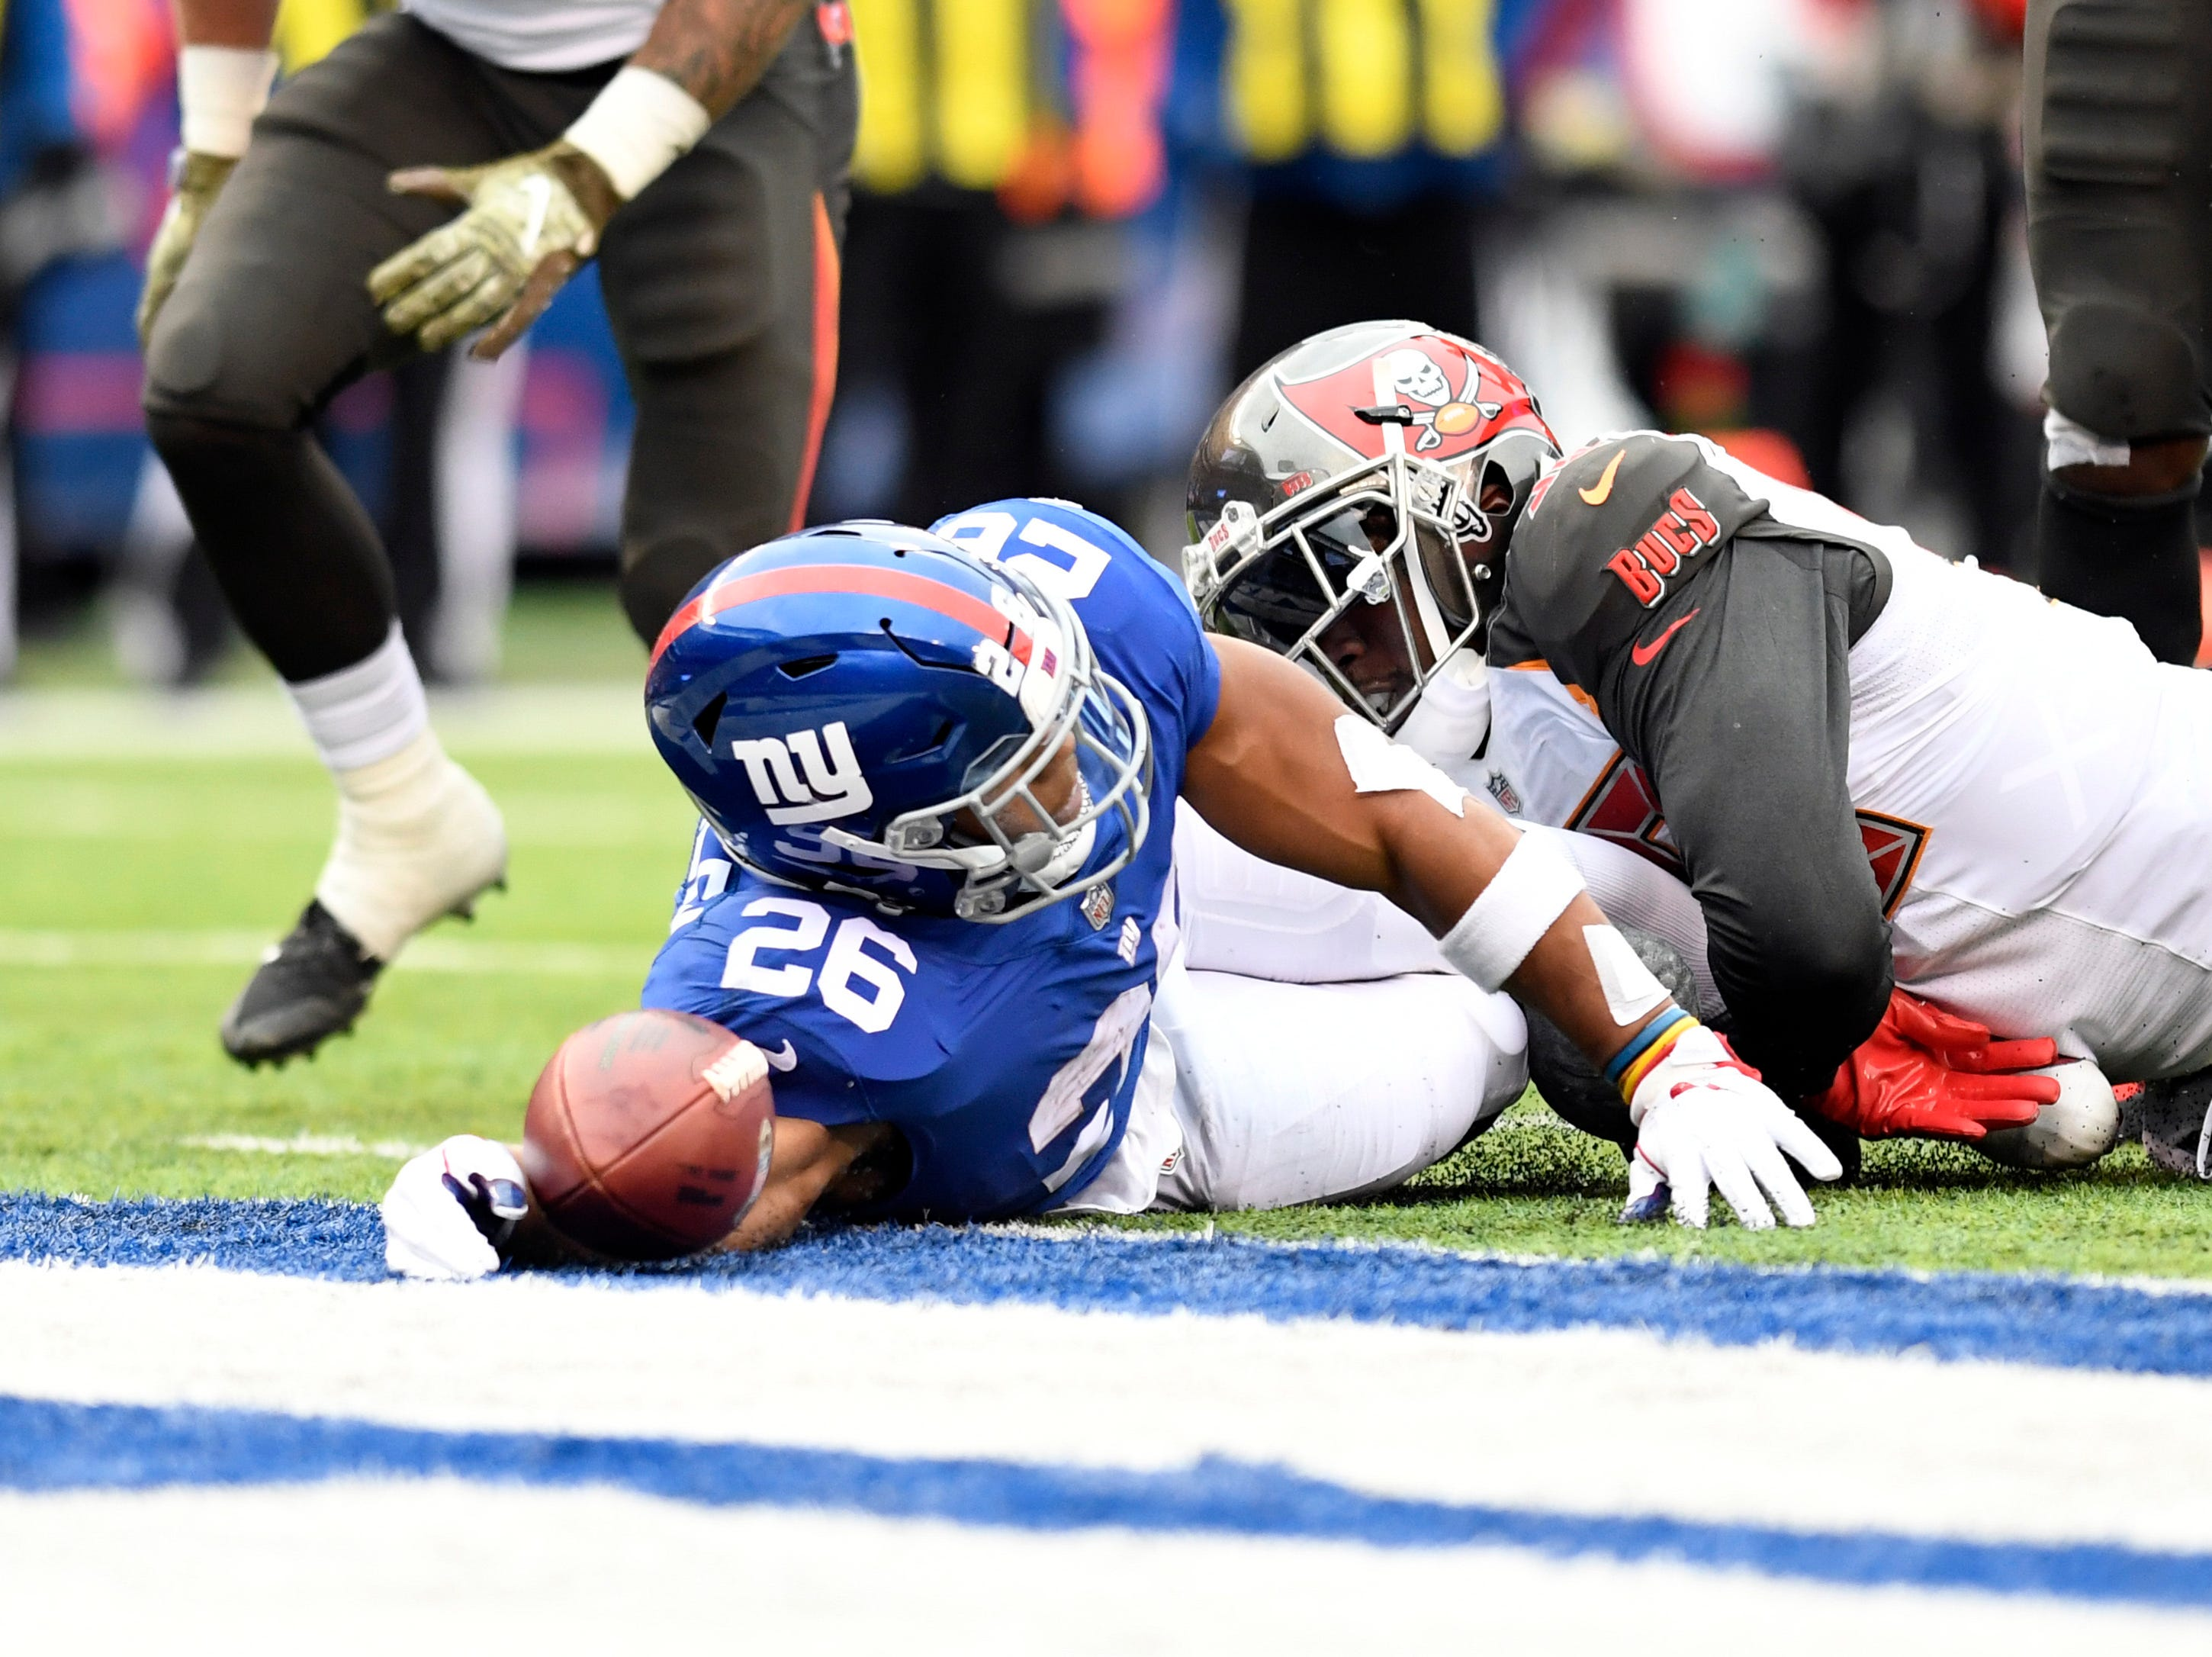 New York Giants running back Saquon Barkley (26) dives into the endzone for a touchdown against the Tampa Bay Buccaneers in the first half on Sunday, Nov. 18, 2018 in East Rutherford.